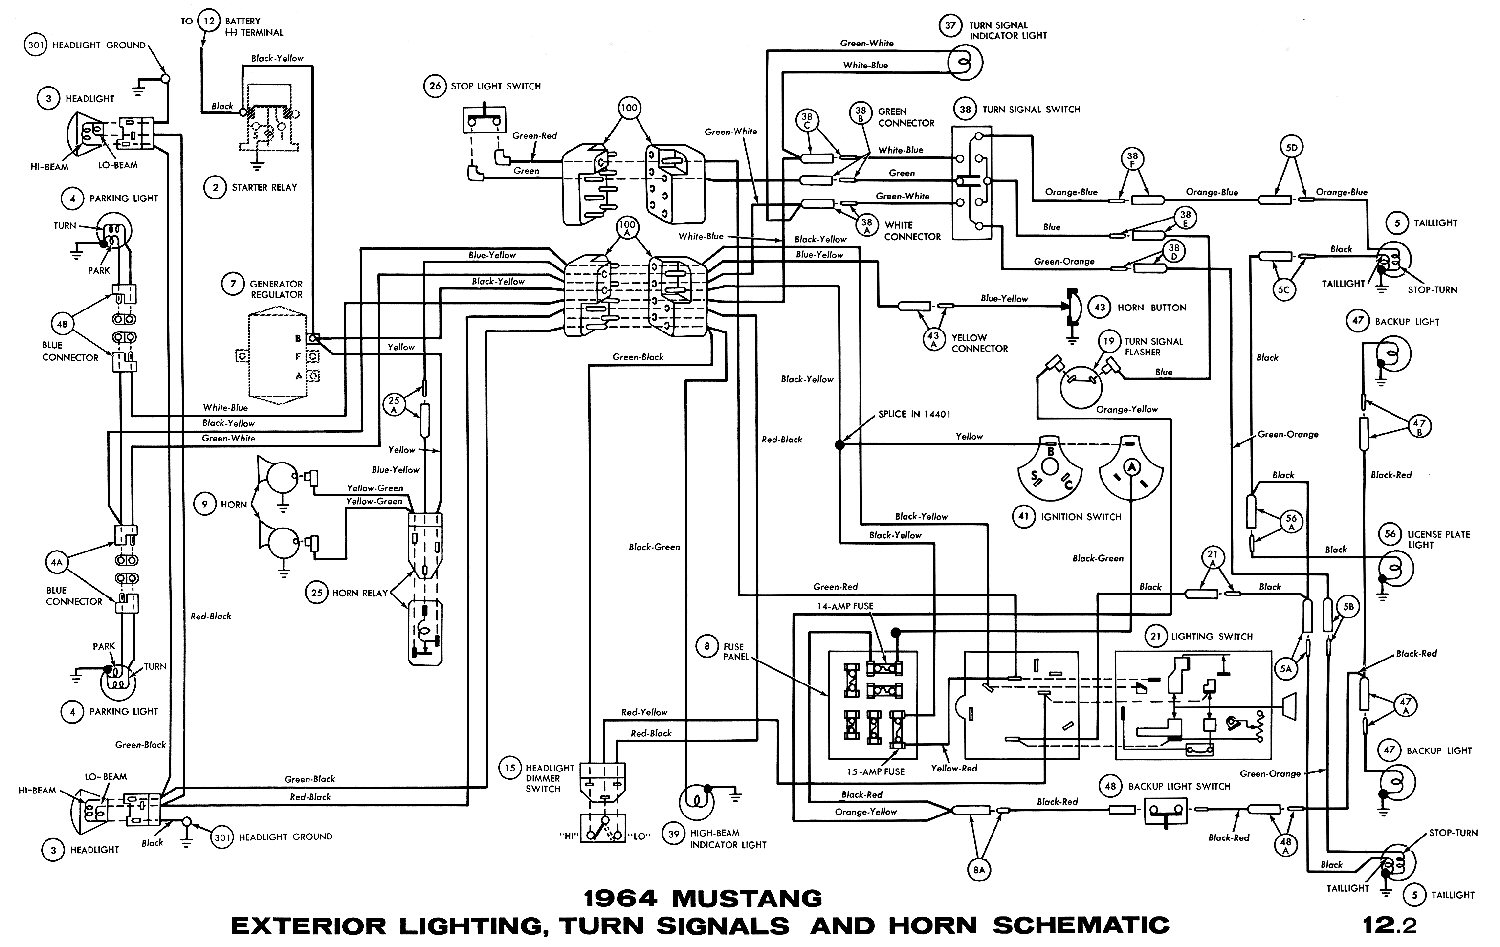 66 Mustang Turn Signal Wiring Diagram And Ebooks Alternator 1966 Flasher Schematic Todays Rh 2 6 9 1813weddingbarn Com